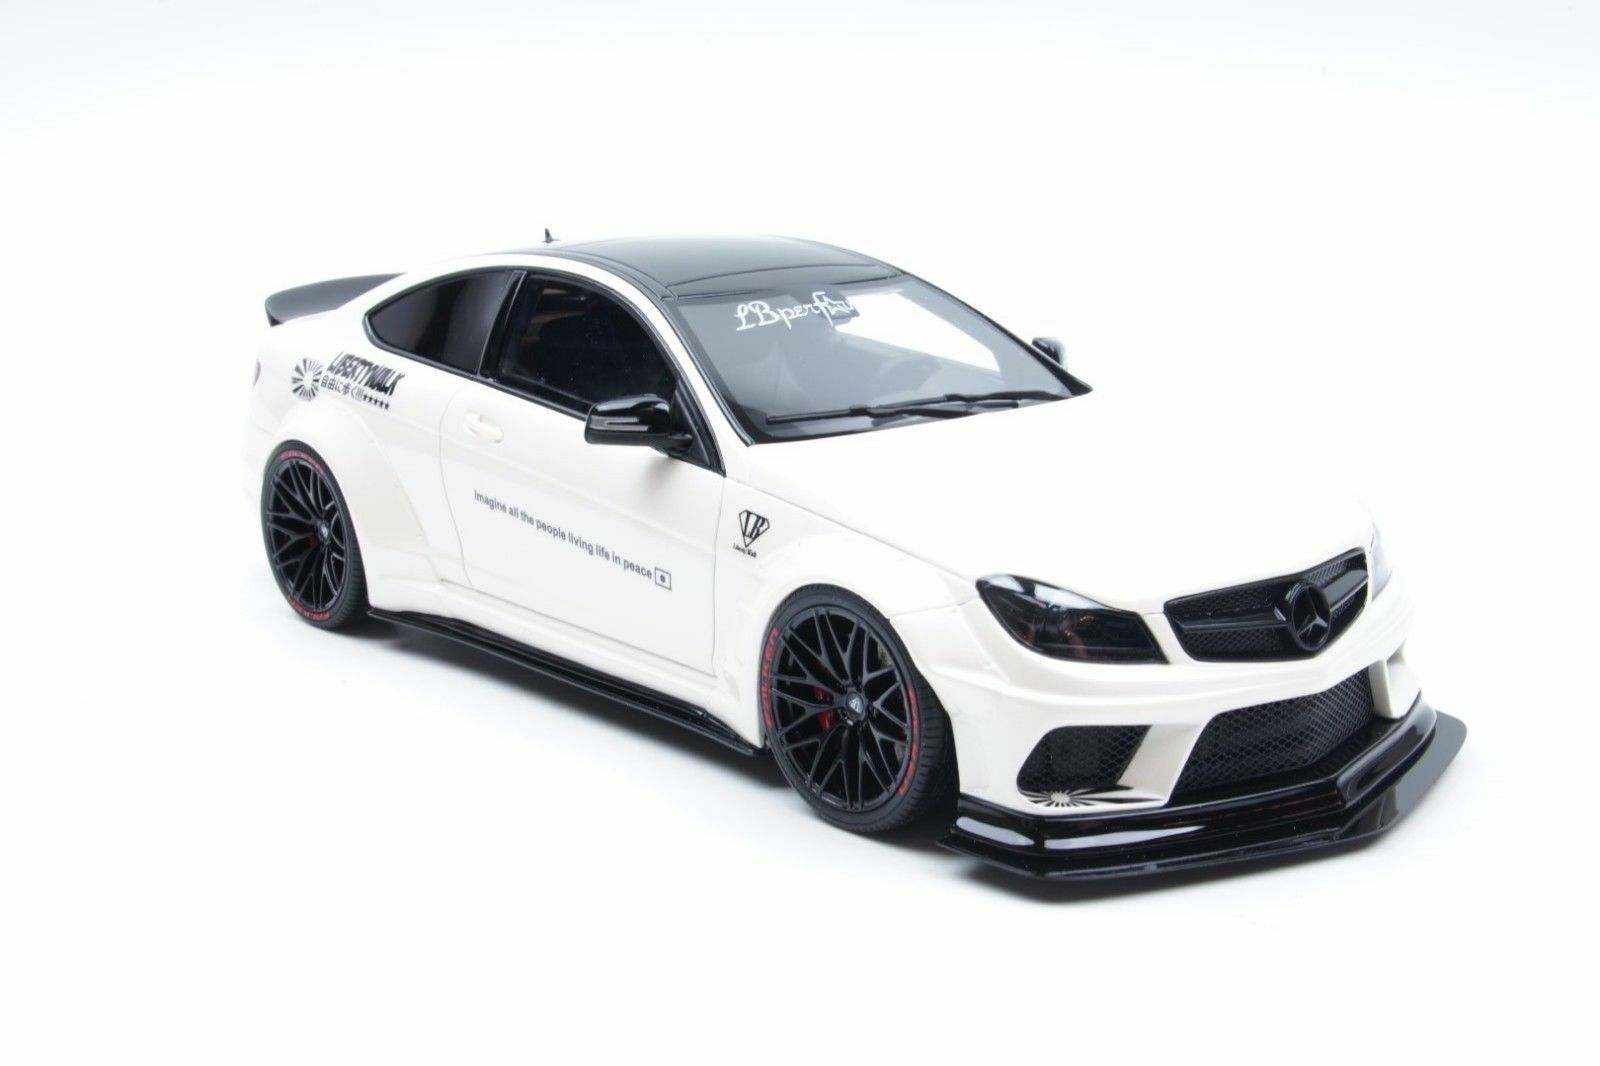 GT-SPIRIT Mercedes-Benz c63 w204 Coupè LB-Works BIANCO 1:18